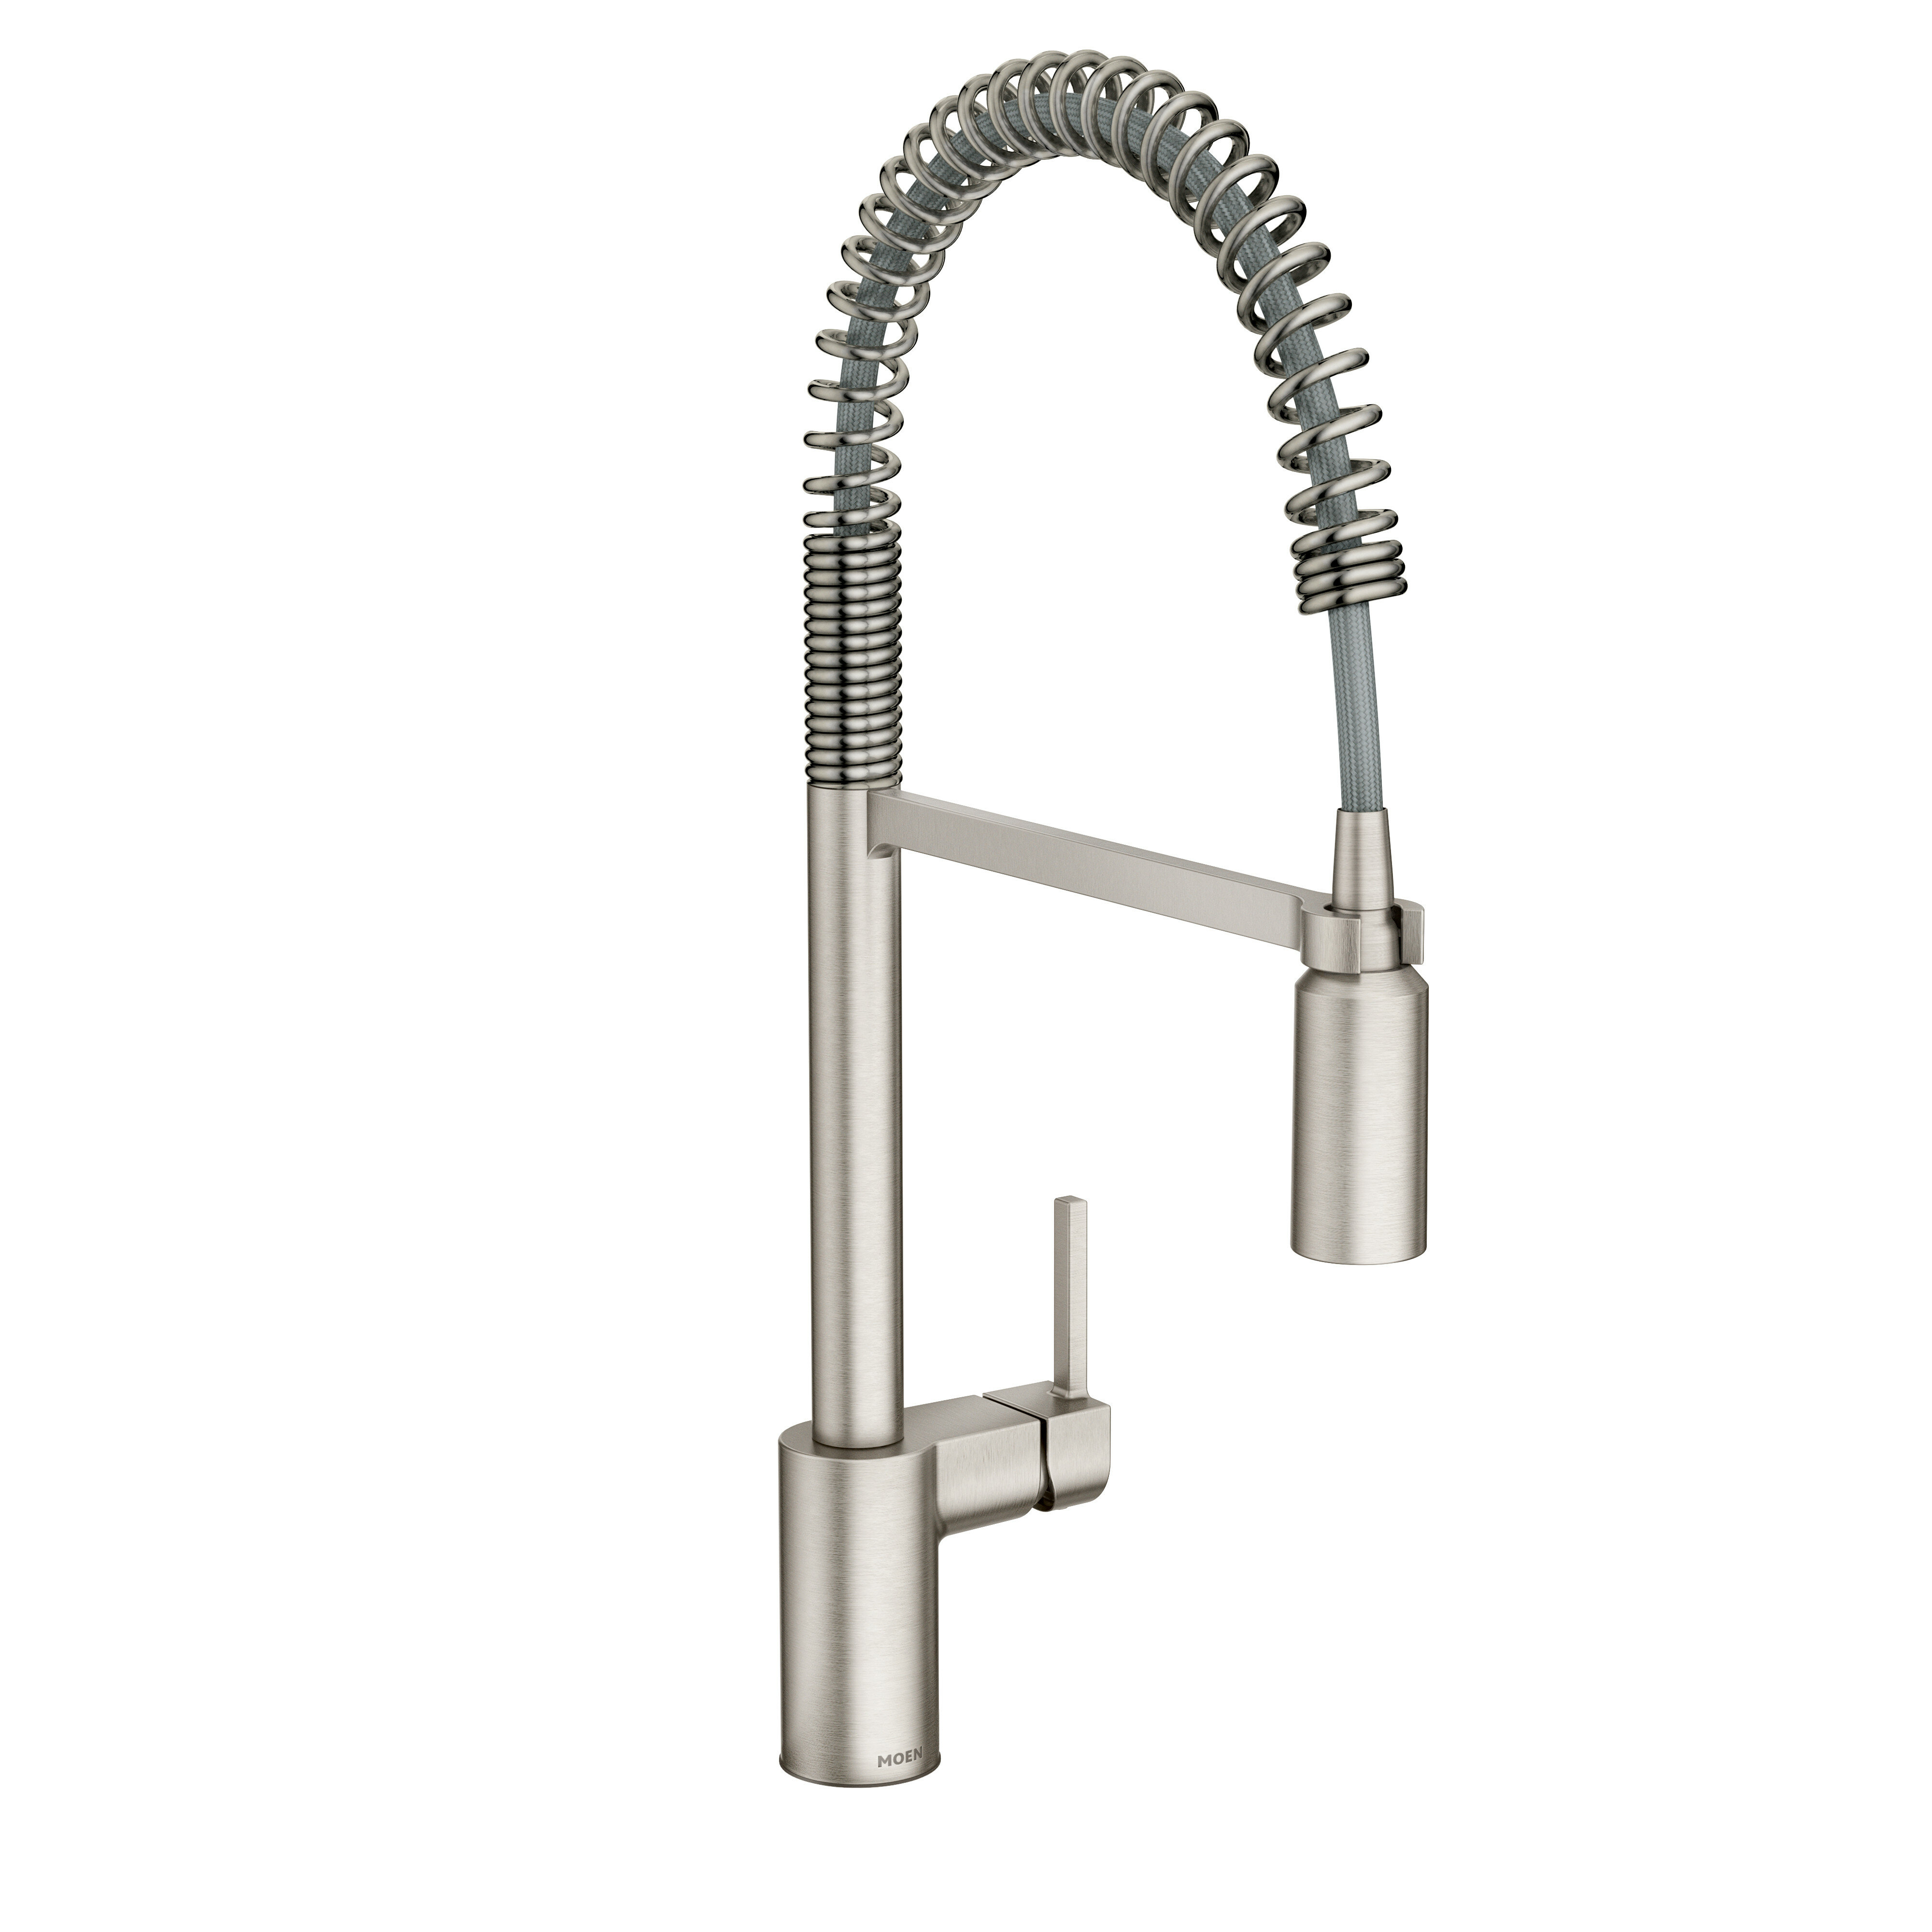 5923srs Moen Align Pull Down Single Handle Kitchen Faucet With